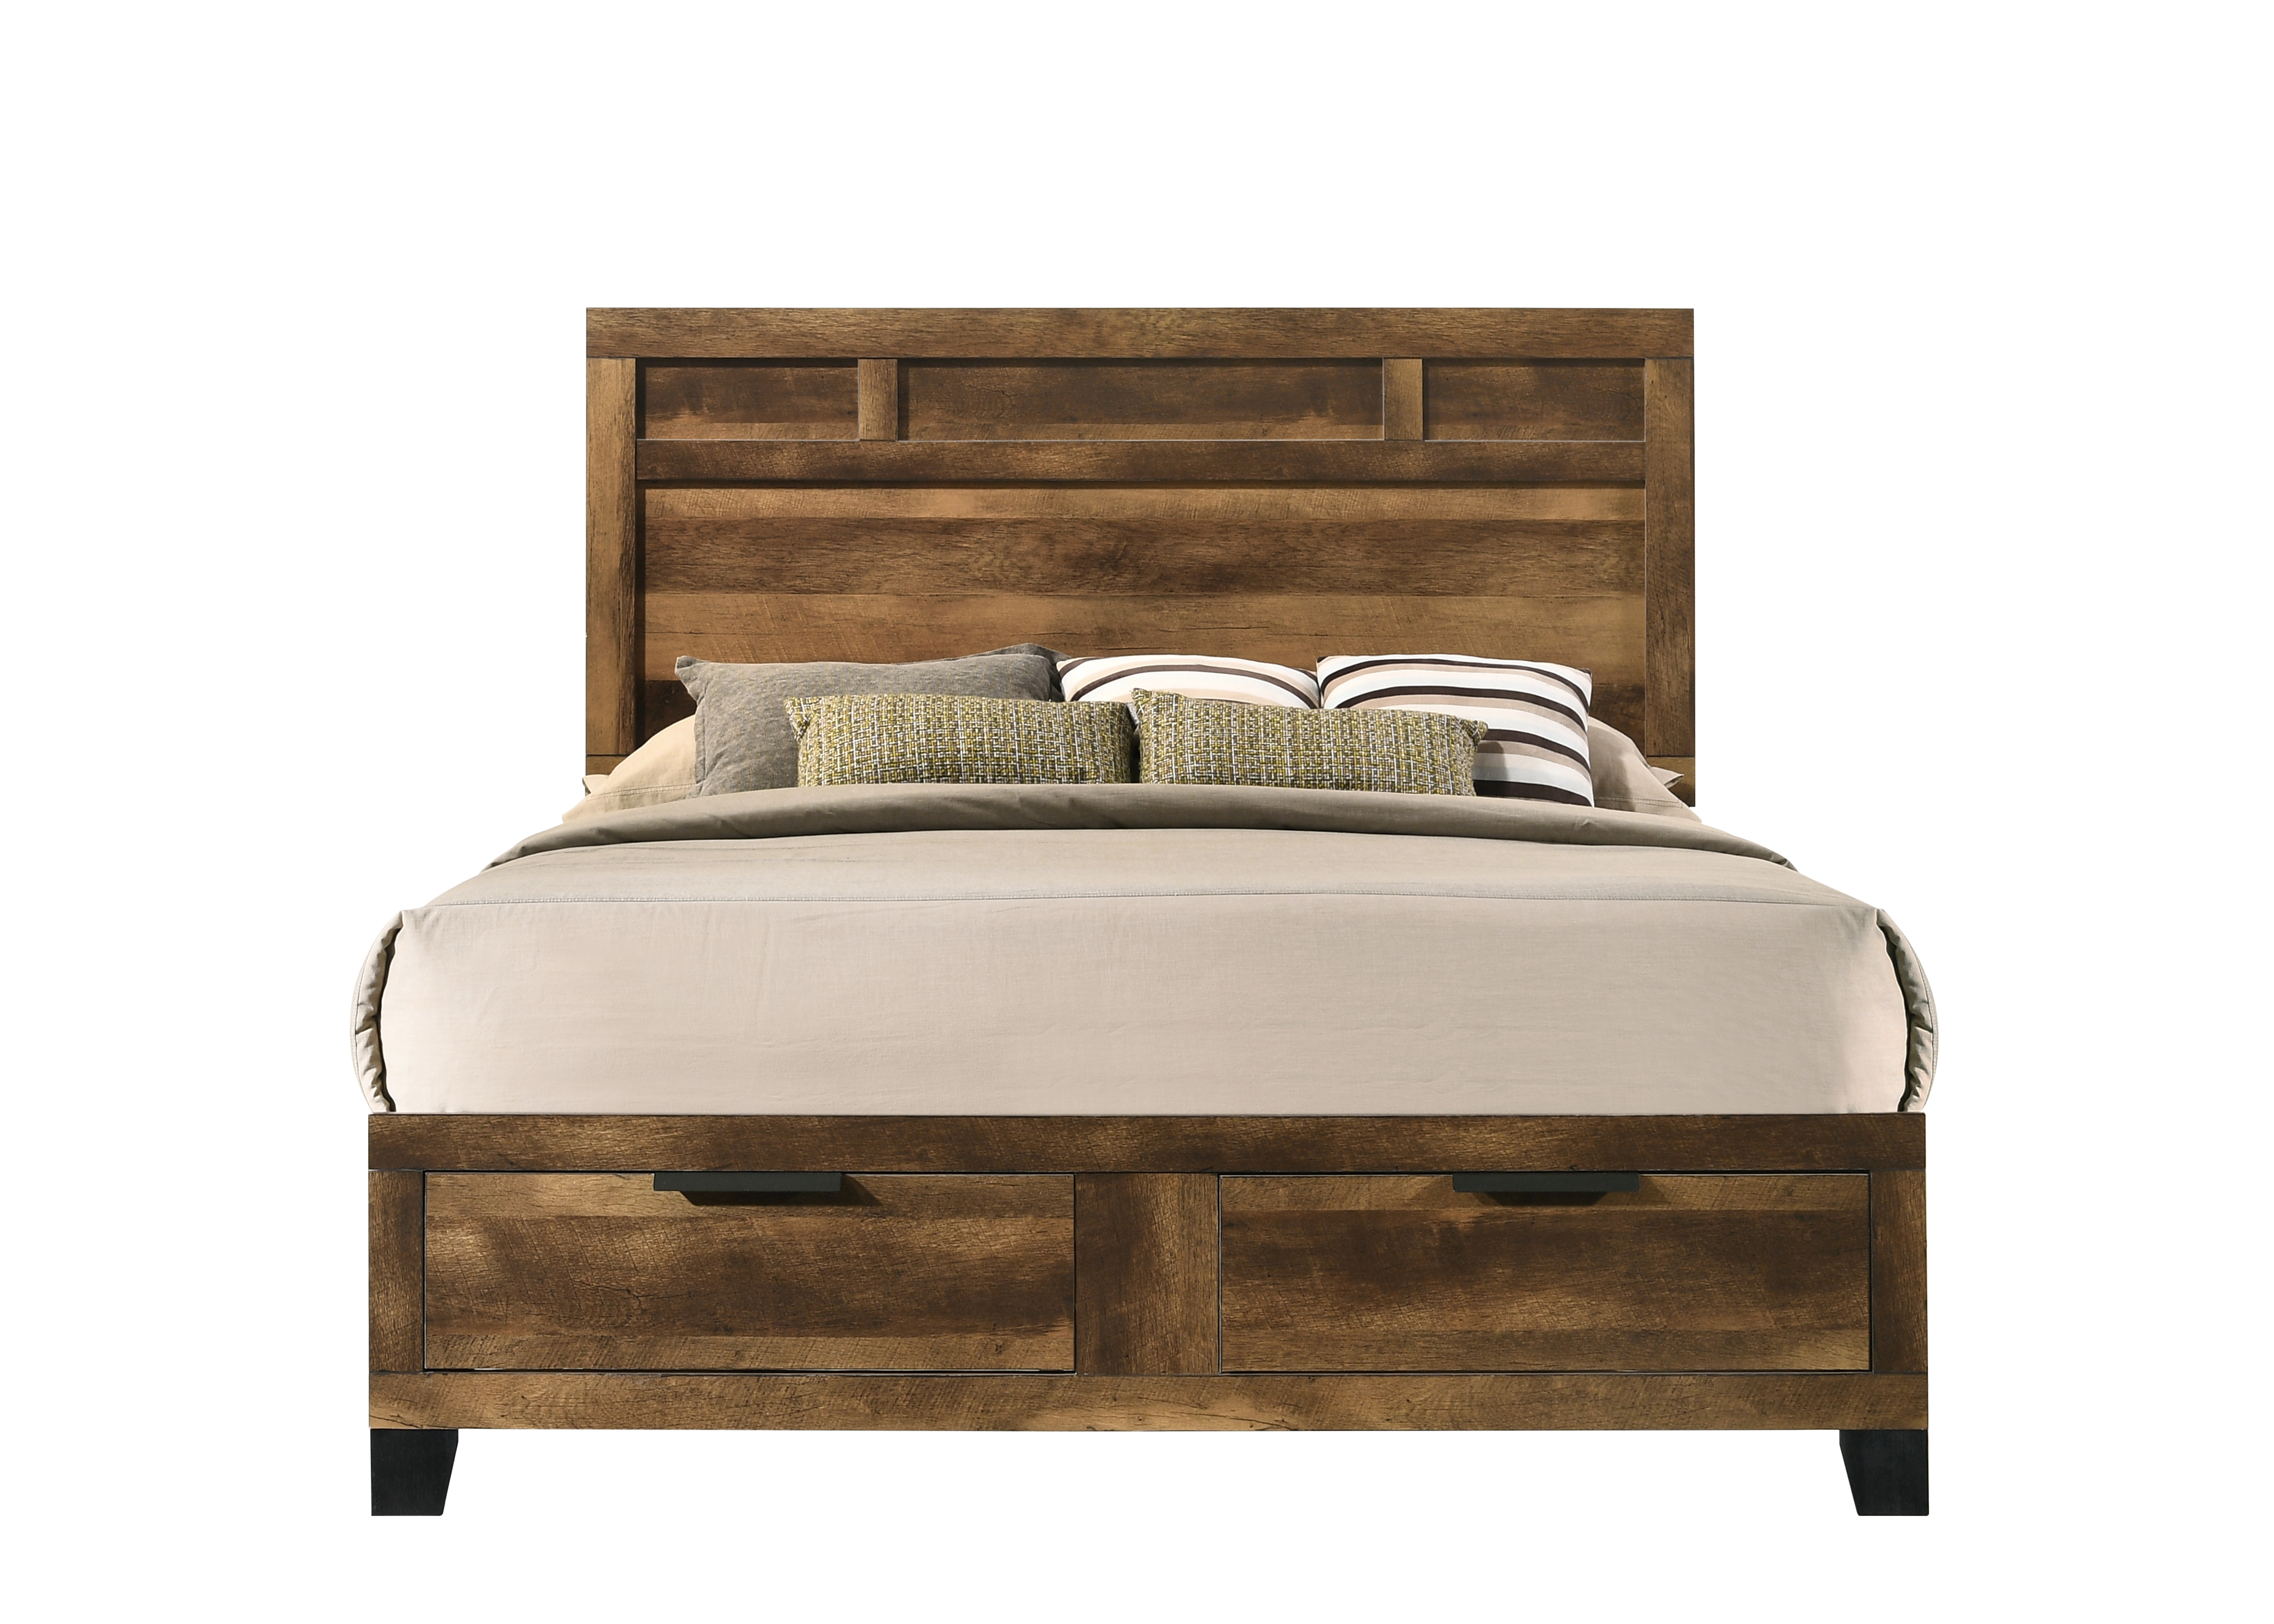 Morales King Bed by Acme Furniture at Dream Home Interiors